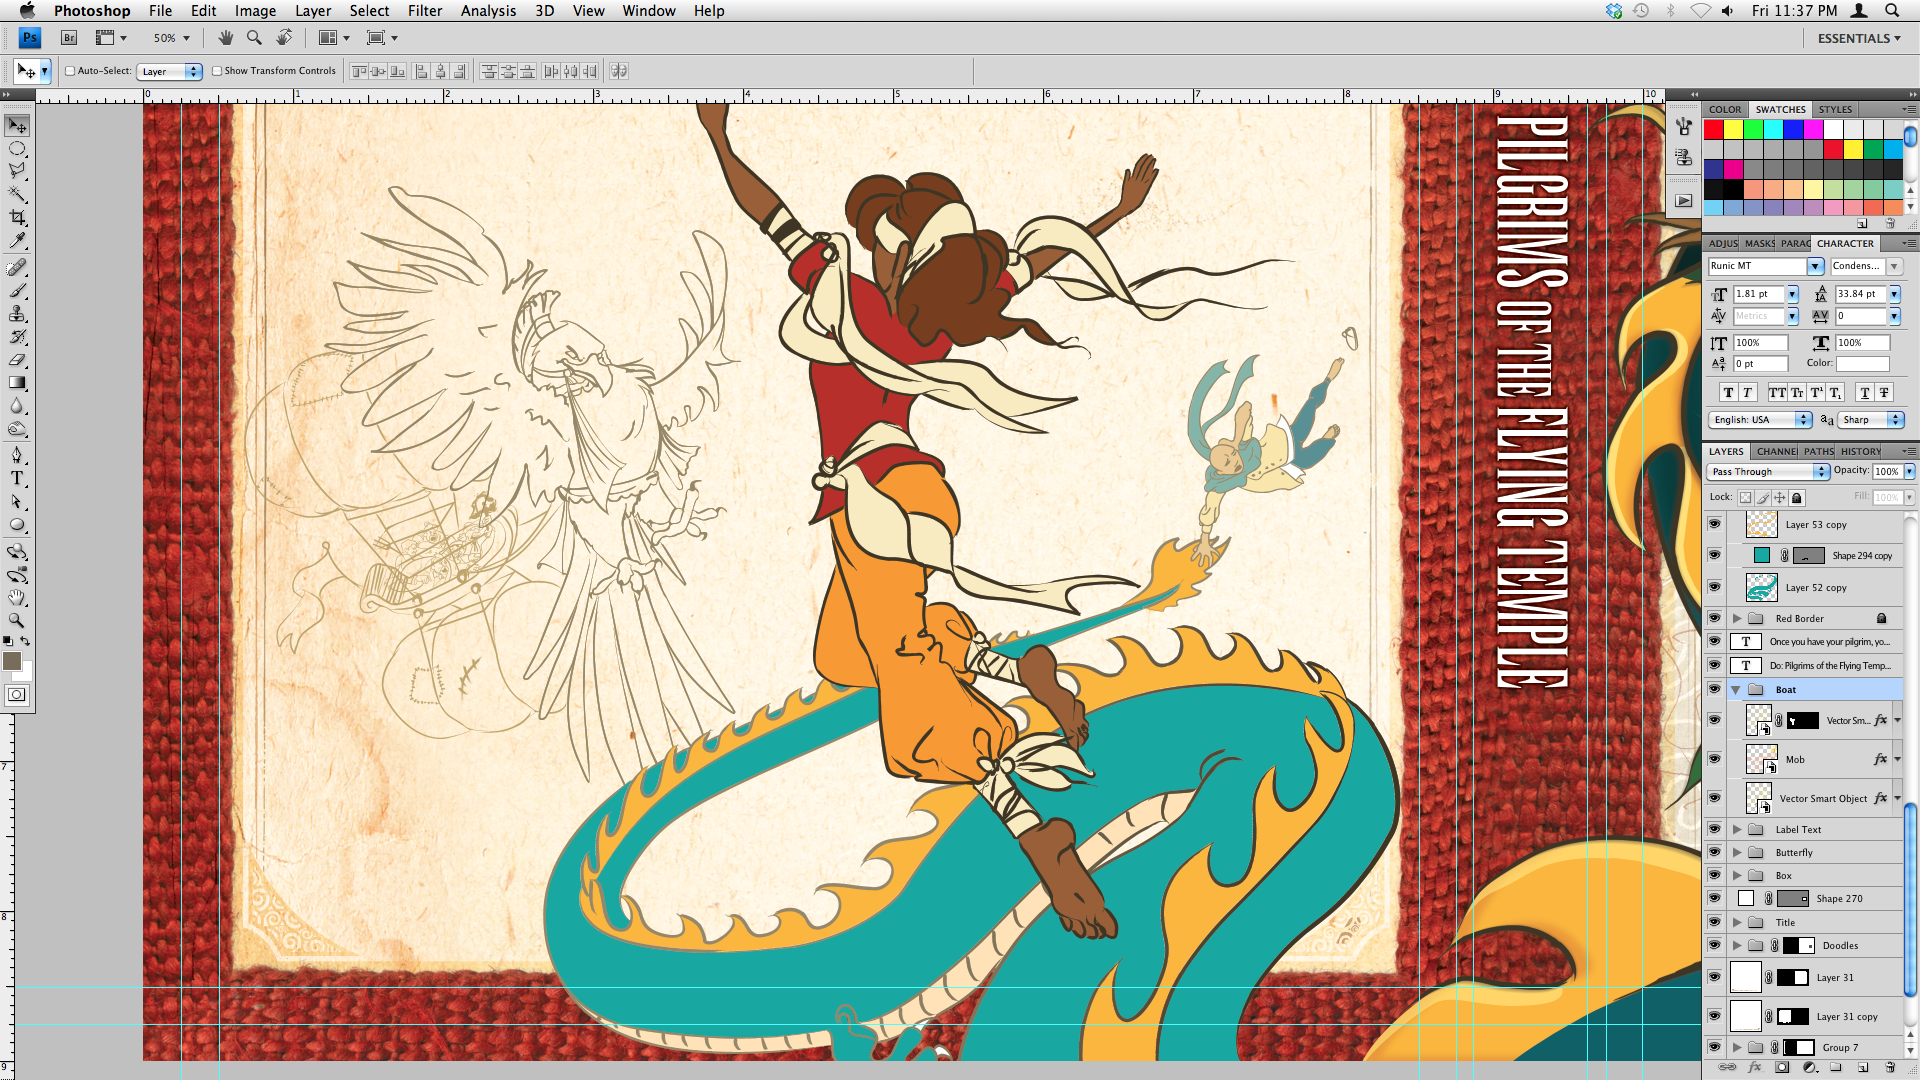 Work in Progress - Back cover of Do: Pilgrims of the Flying Temple